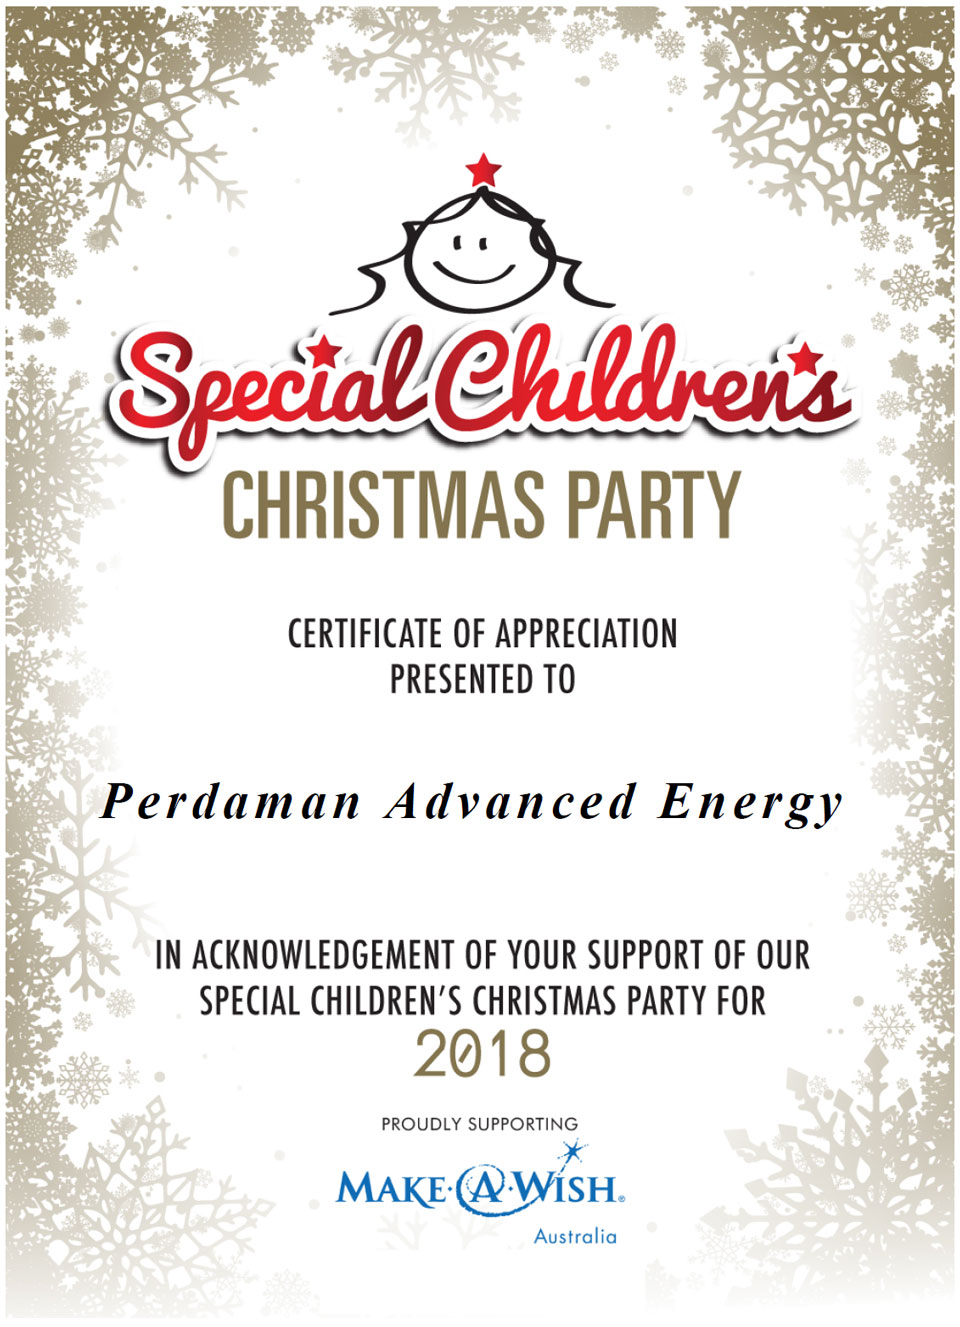 Special Children's Christmas Party 2018